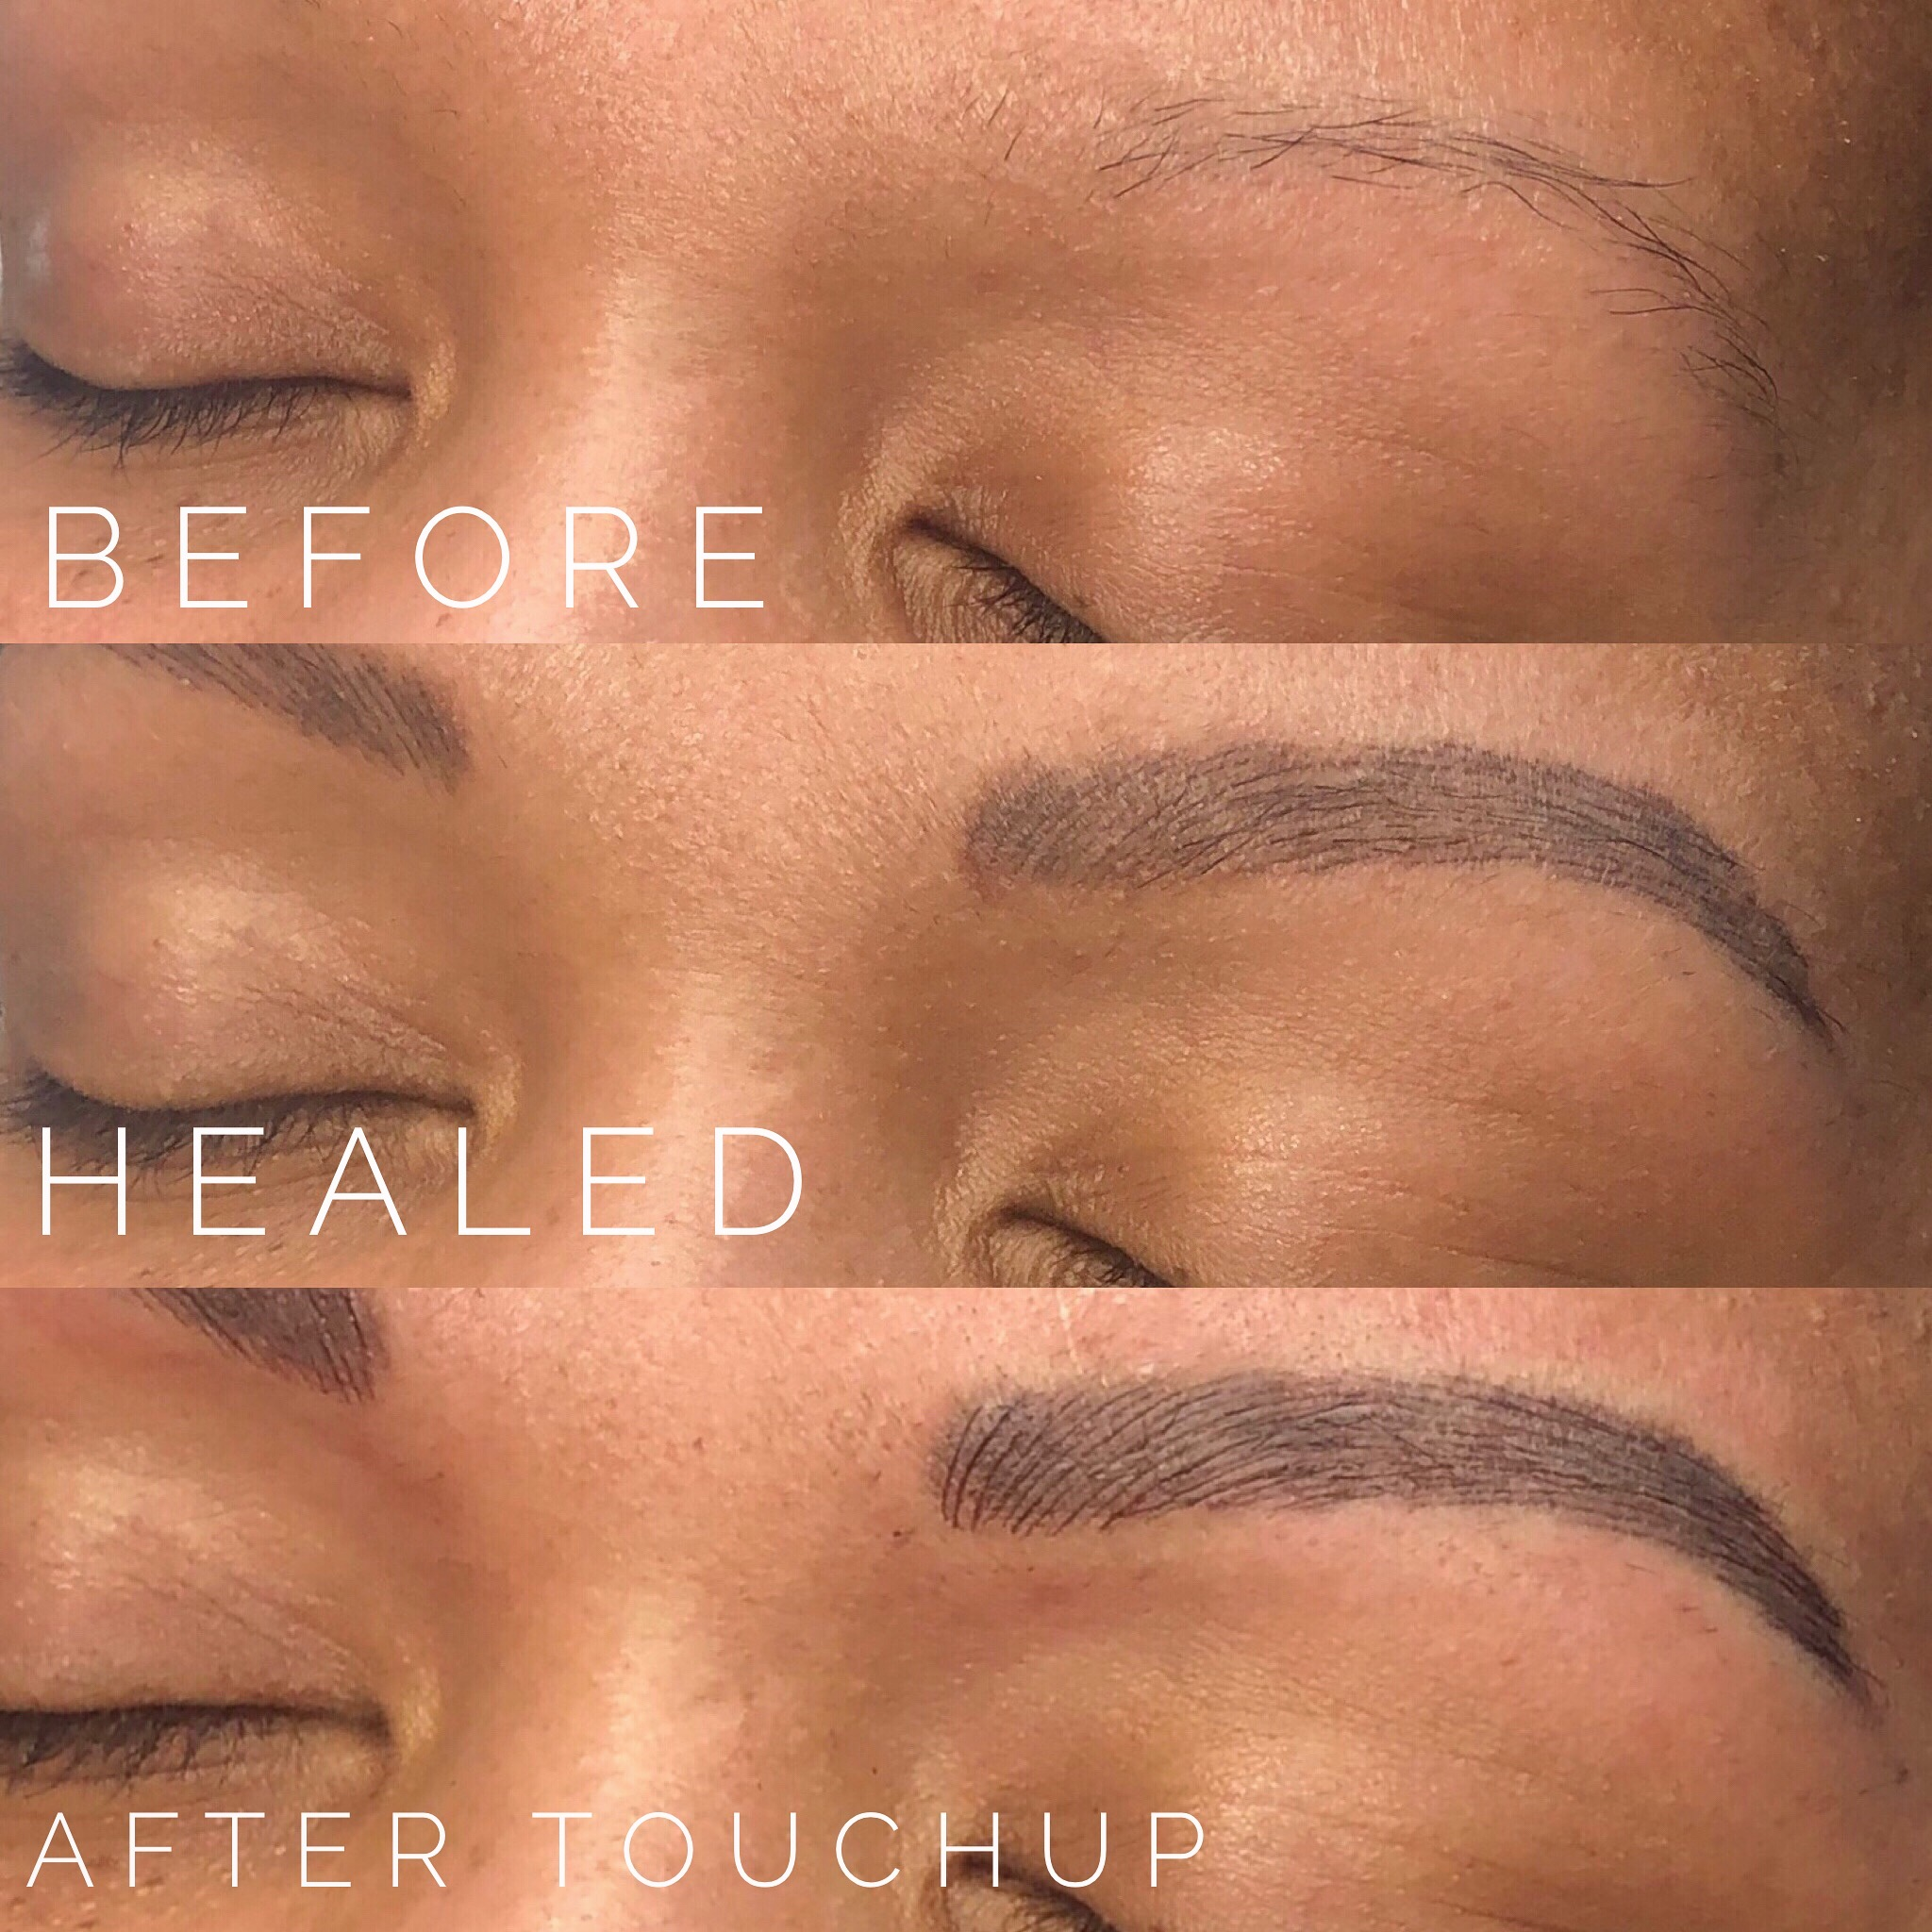 - Microblading is a 2 step procedure, meaning a 30-90 day touch-up is required to be able to build you the best brow. At touchup we will refine the initial strokes created, adjust color and shape if needed and build density to the brow. We can not stress enough the importance of a touch-up and urge clients to not skip them. For brows that have sparse hair the touchup is where your brows really come to life since its the time where we can give you the density and fullness it needs while still keeping it natural looking.